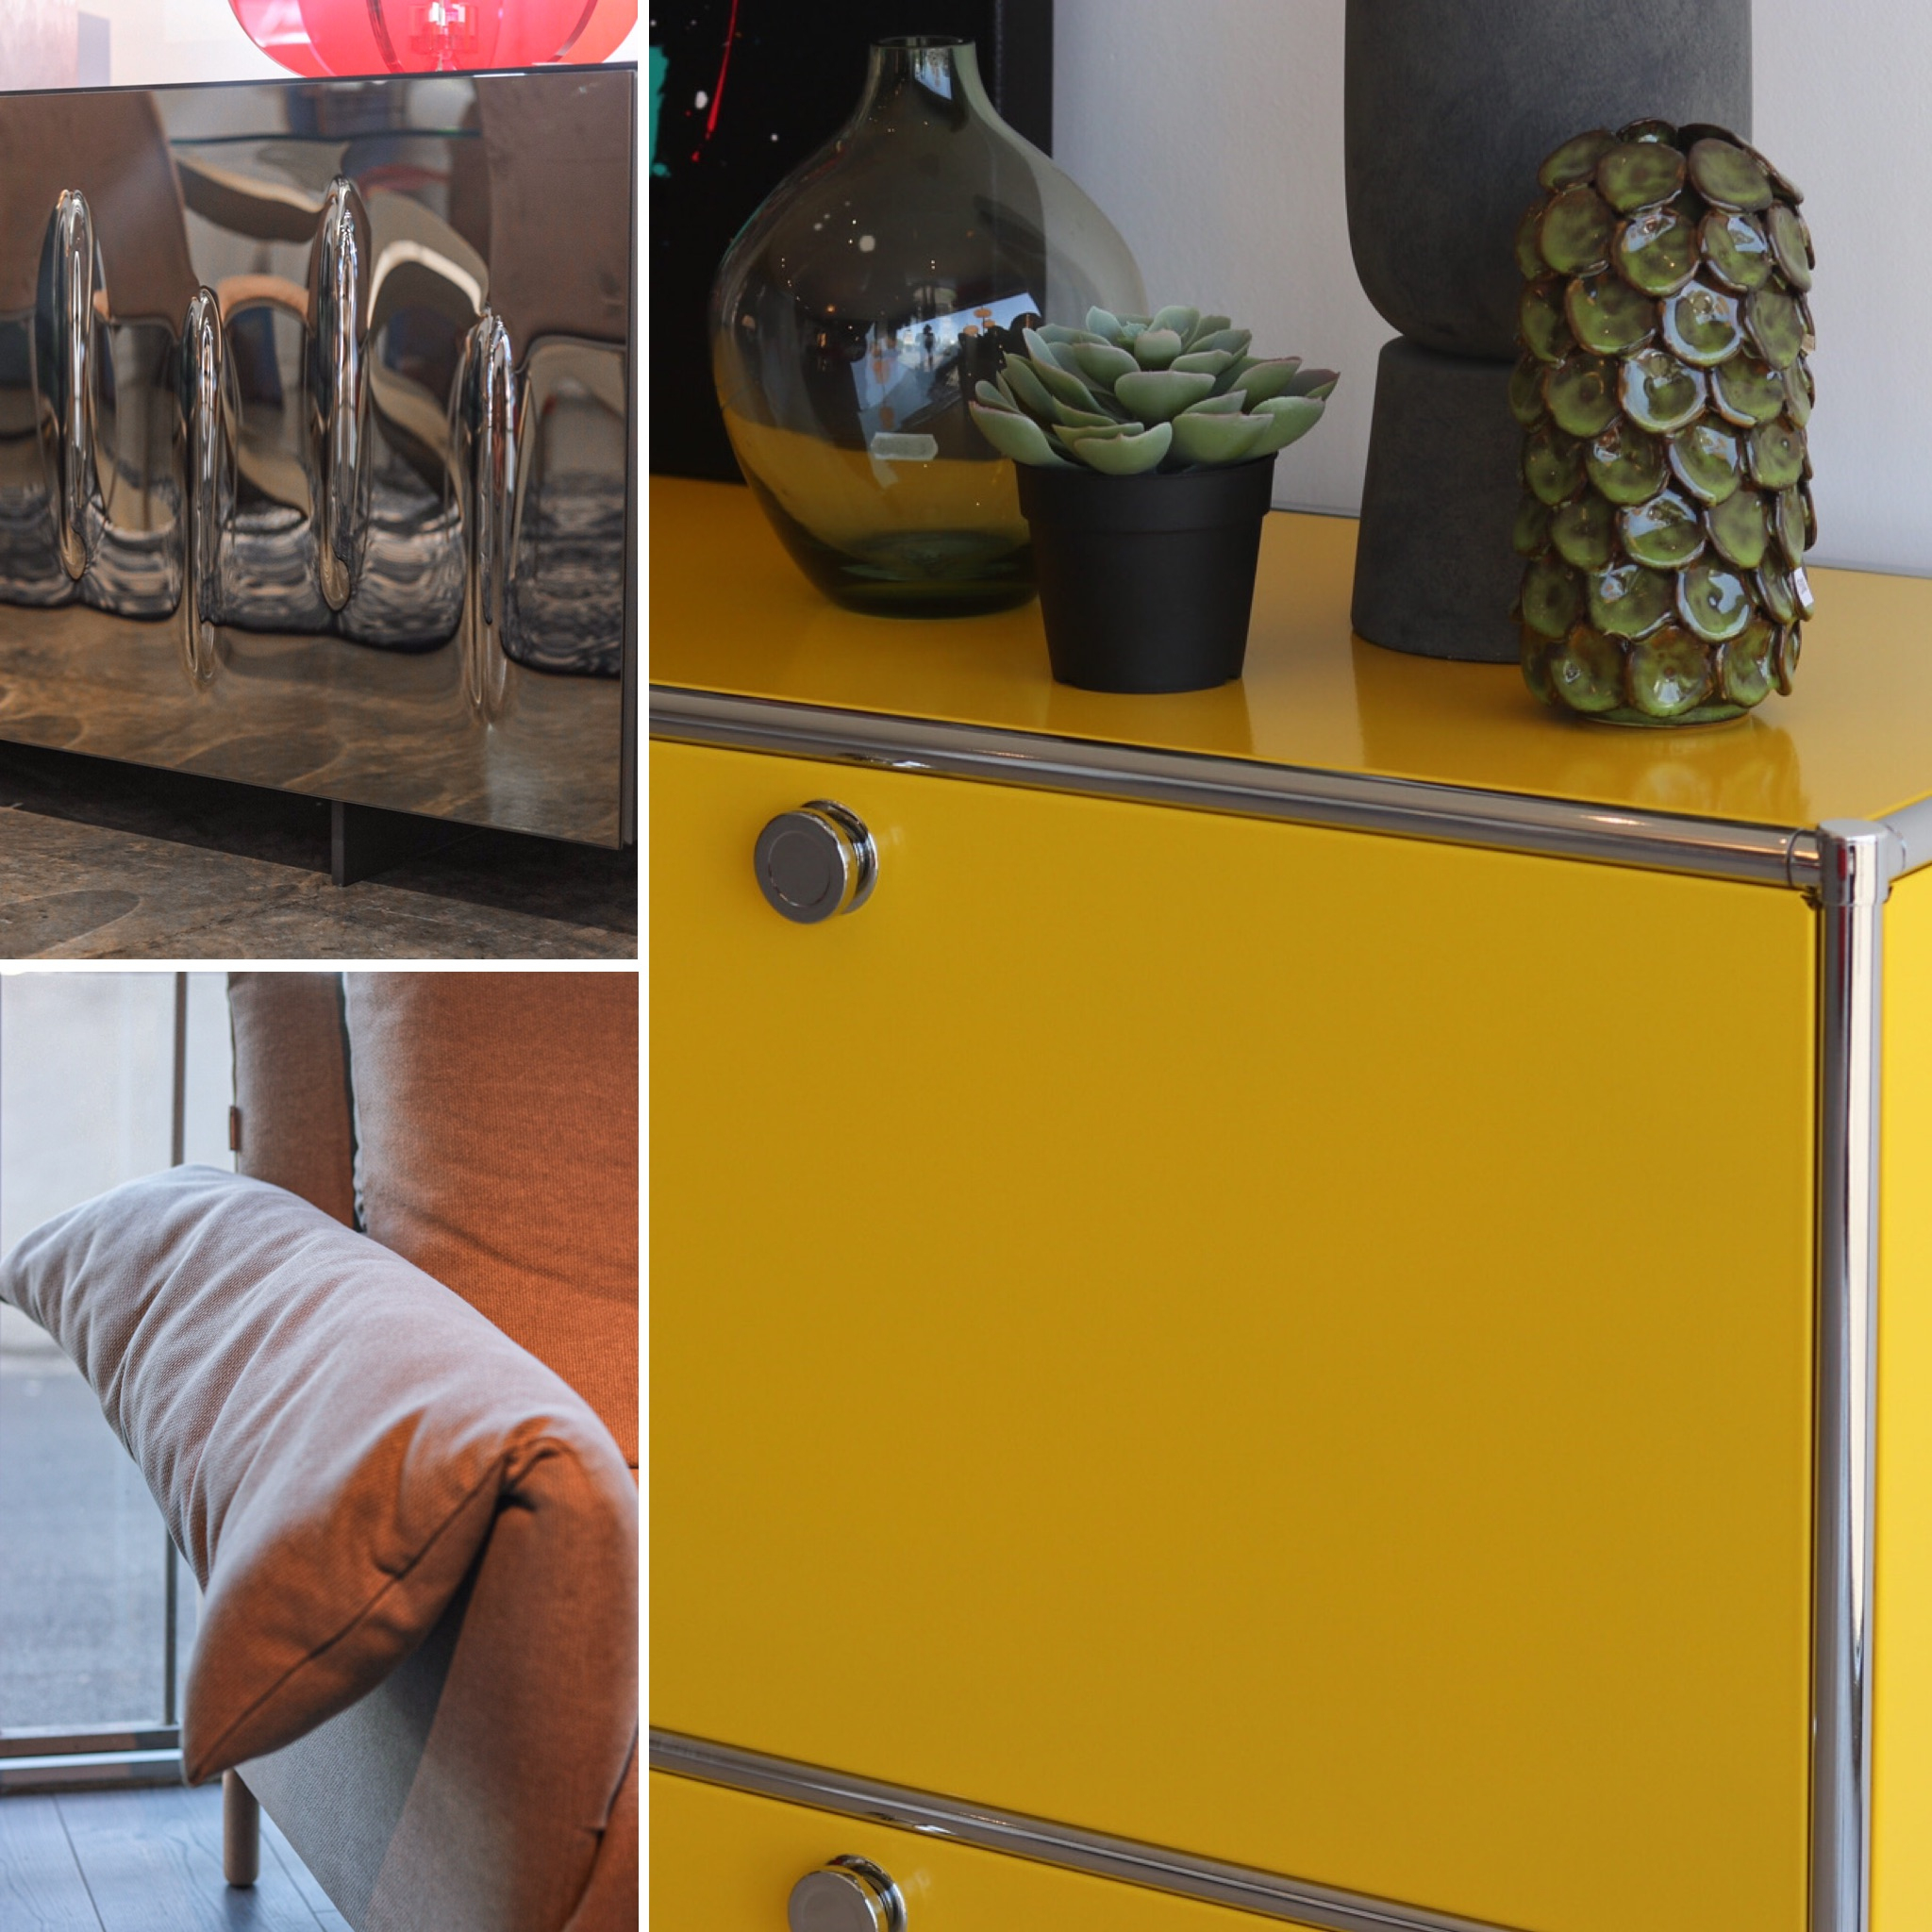 New Collection, Mobilier Design - Montpellier - Must Mobilier concernant Magasin Meuble Montpellier